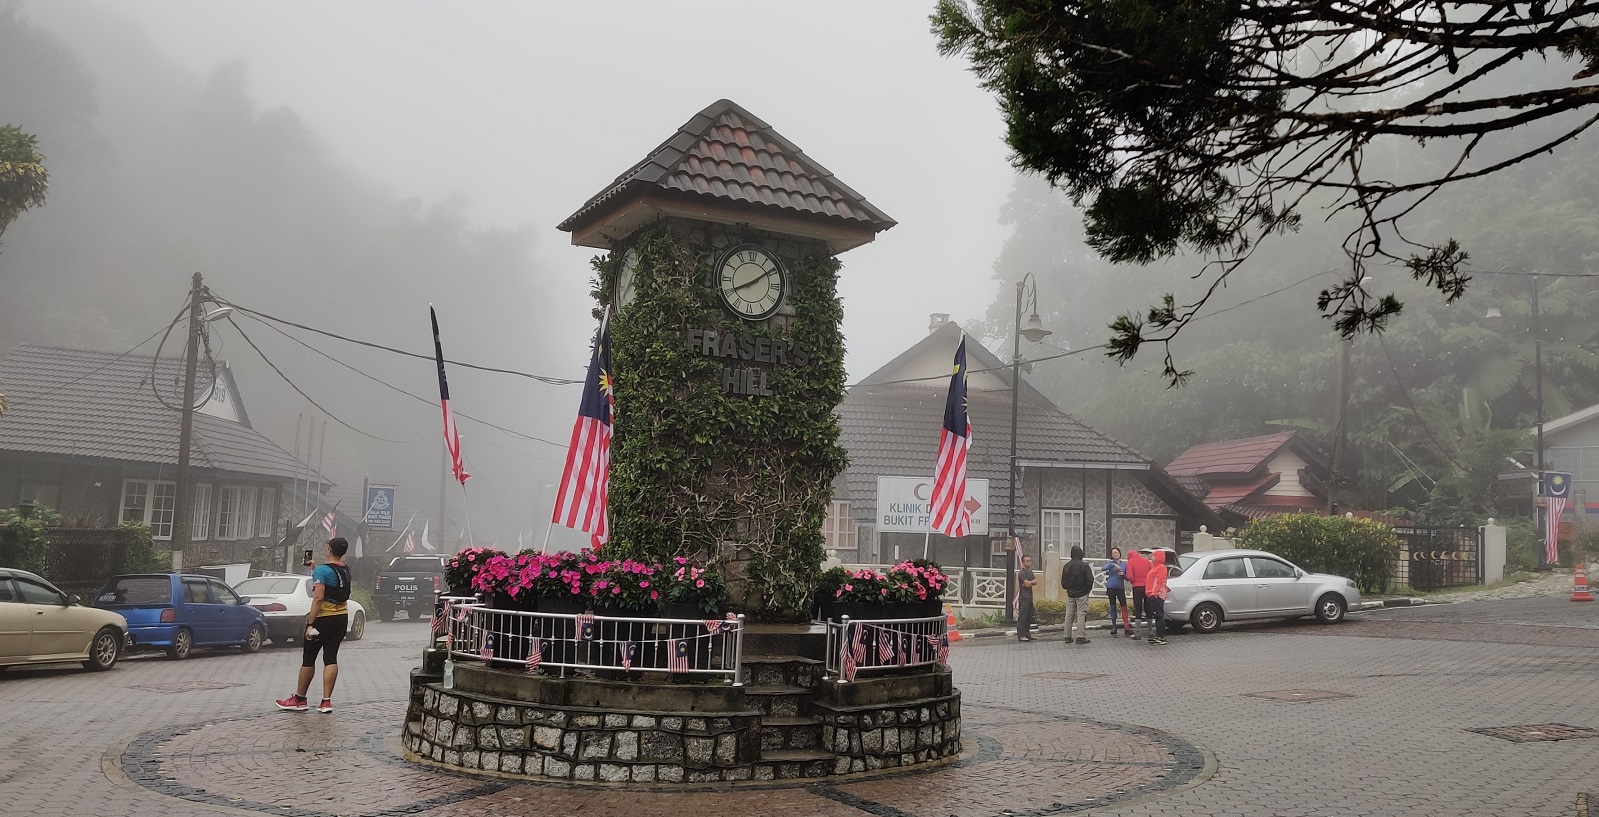 The iconic clocktower greets visitors to Fraser's Hill.